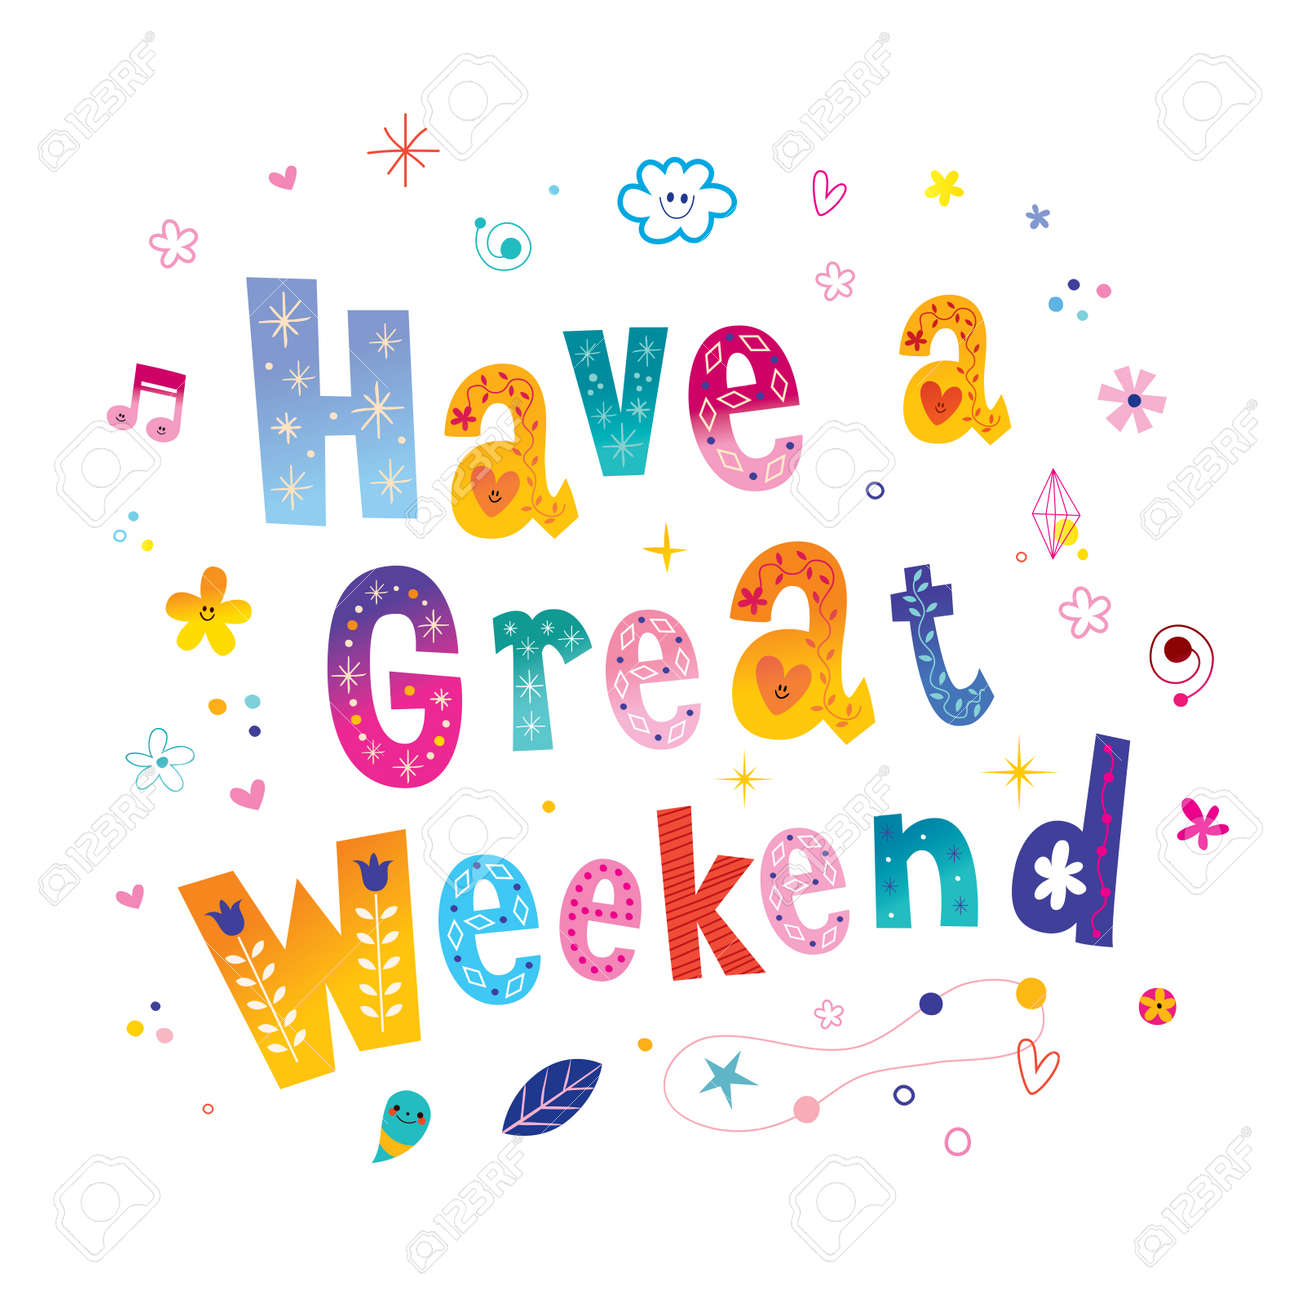 Have A Great Weekend Royalty Free Cliparts, Vectors, And Stock ...